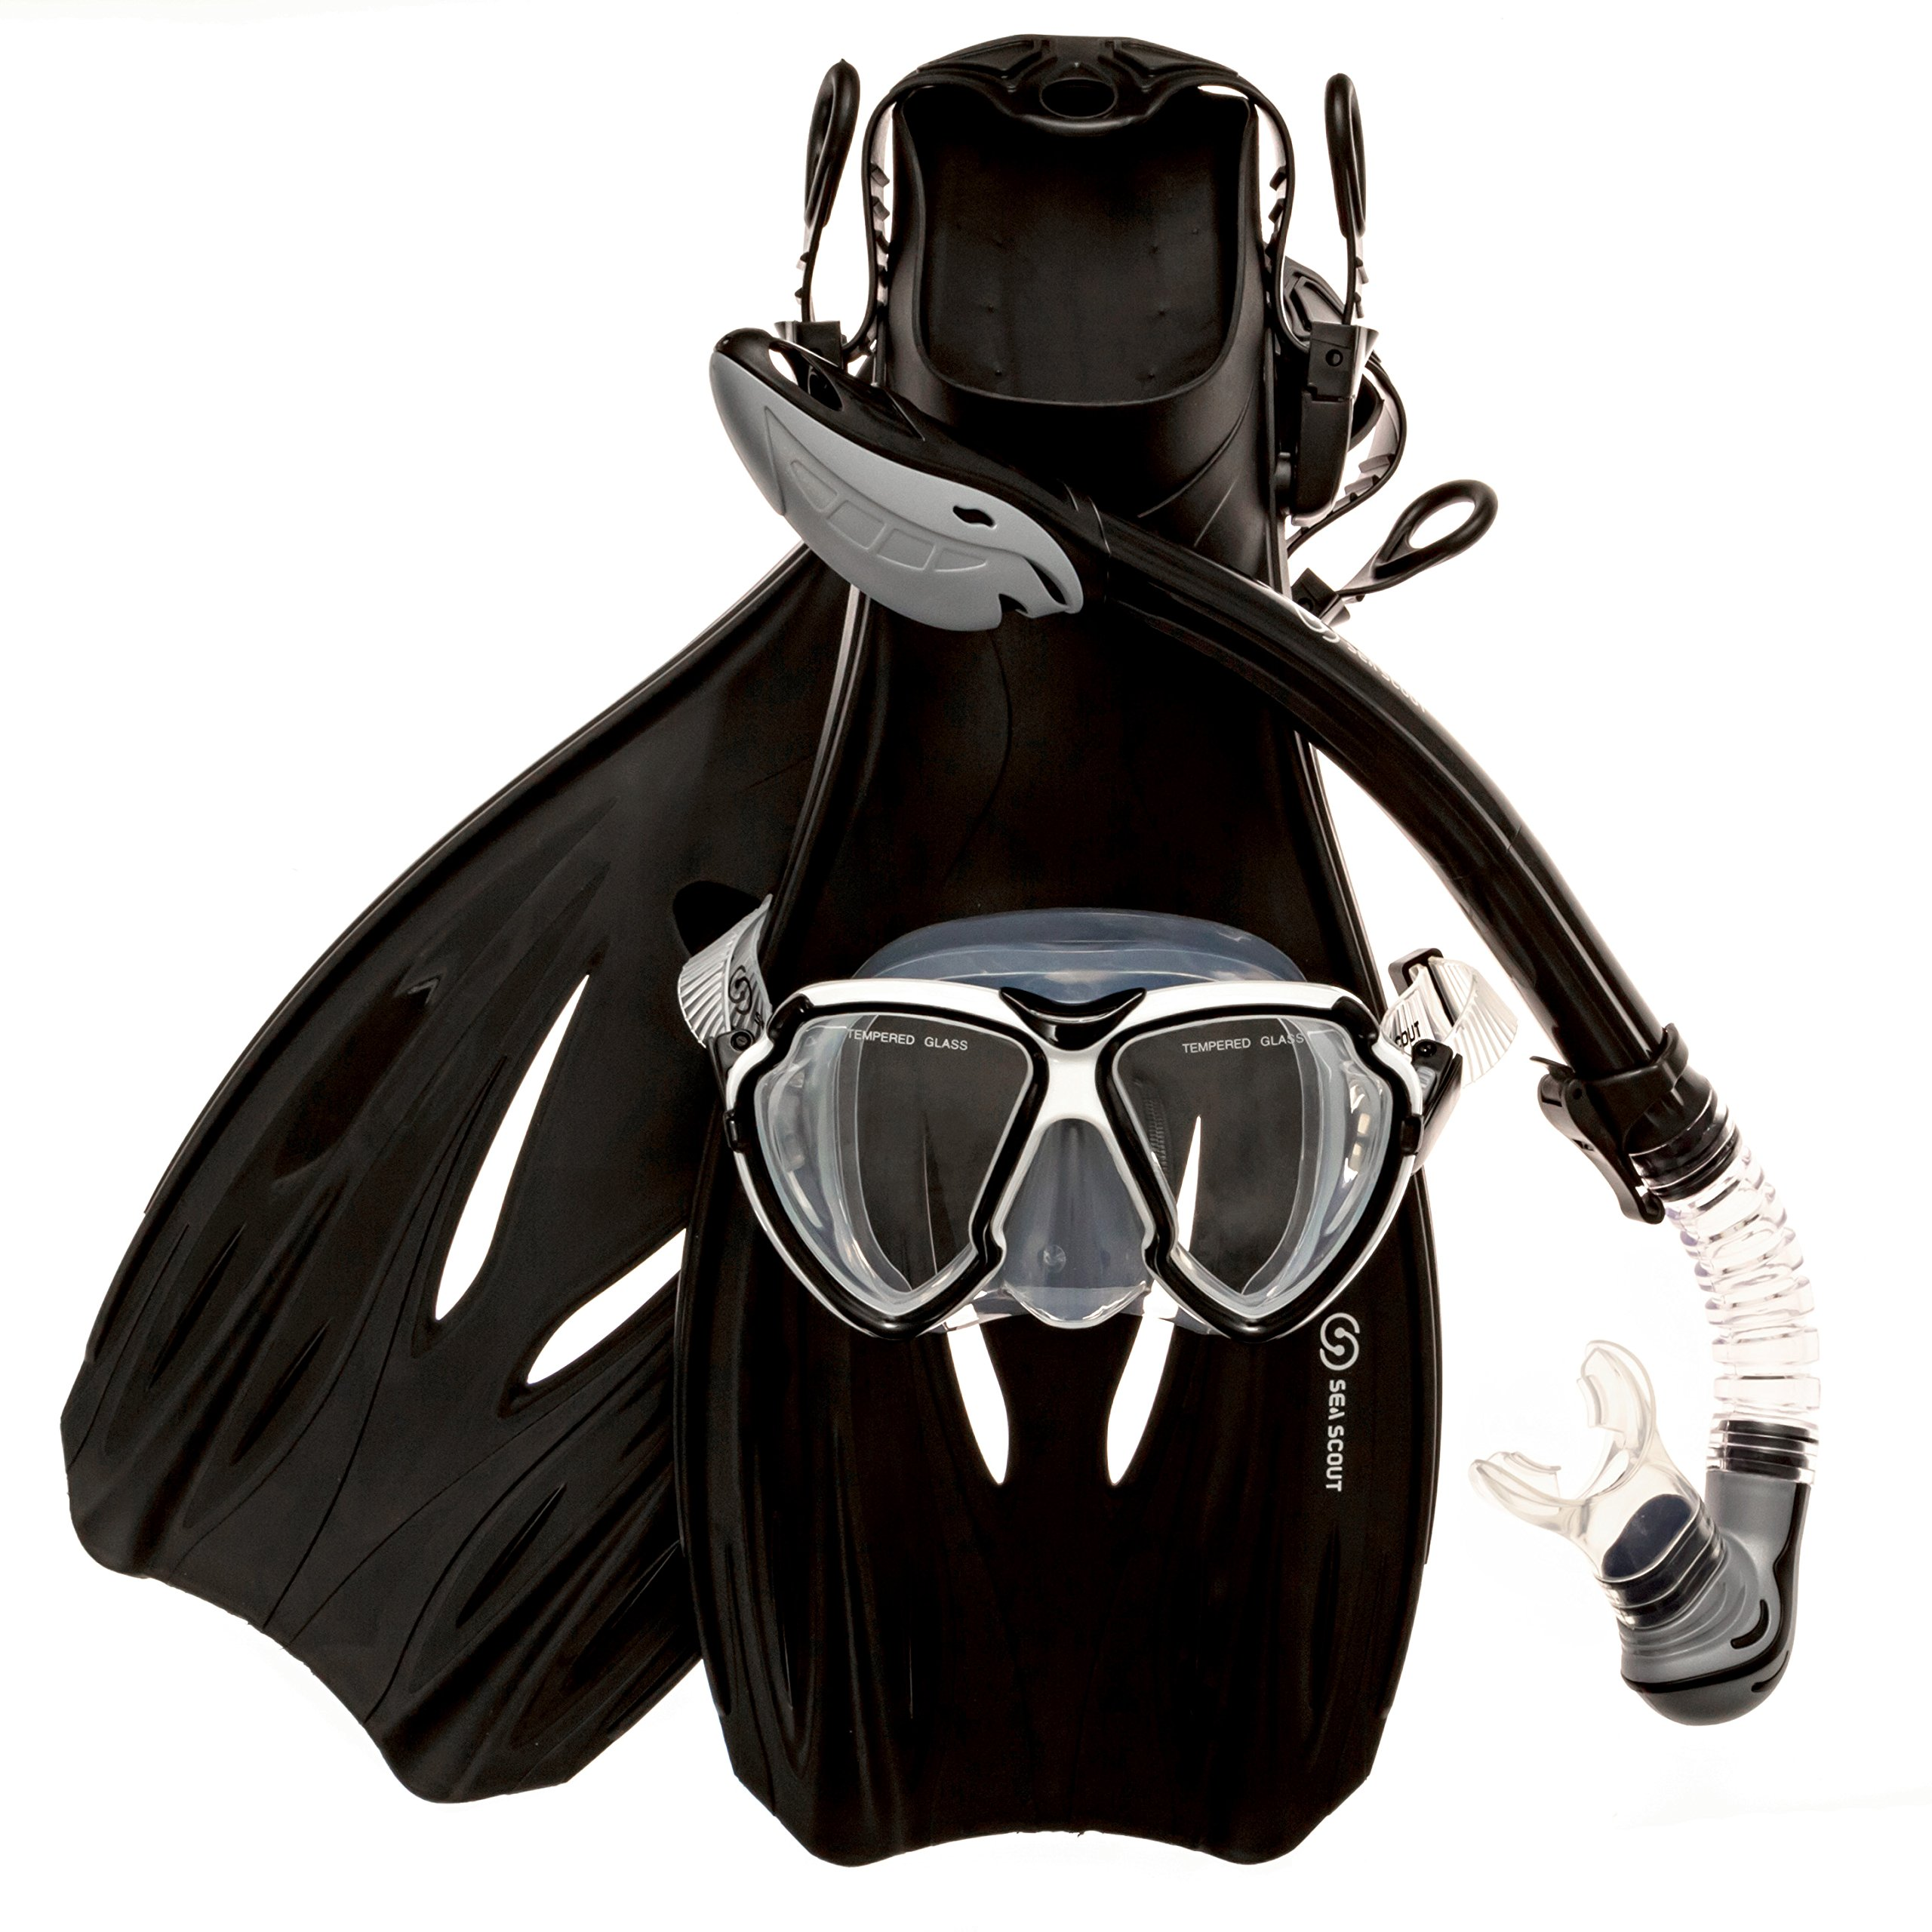 Sea Scout Adult Snorkeling Set - Dry-top Snorkel/Fins/Mask (Black, Medium) by Sea Scout